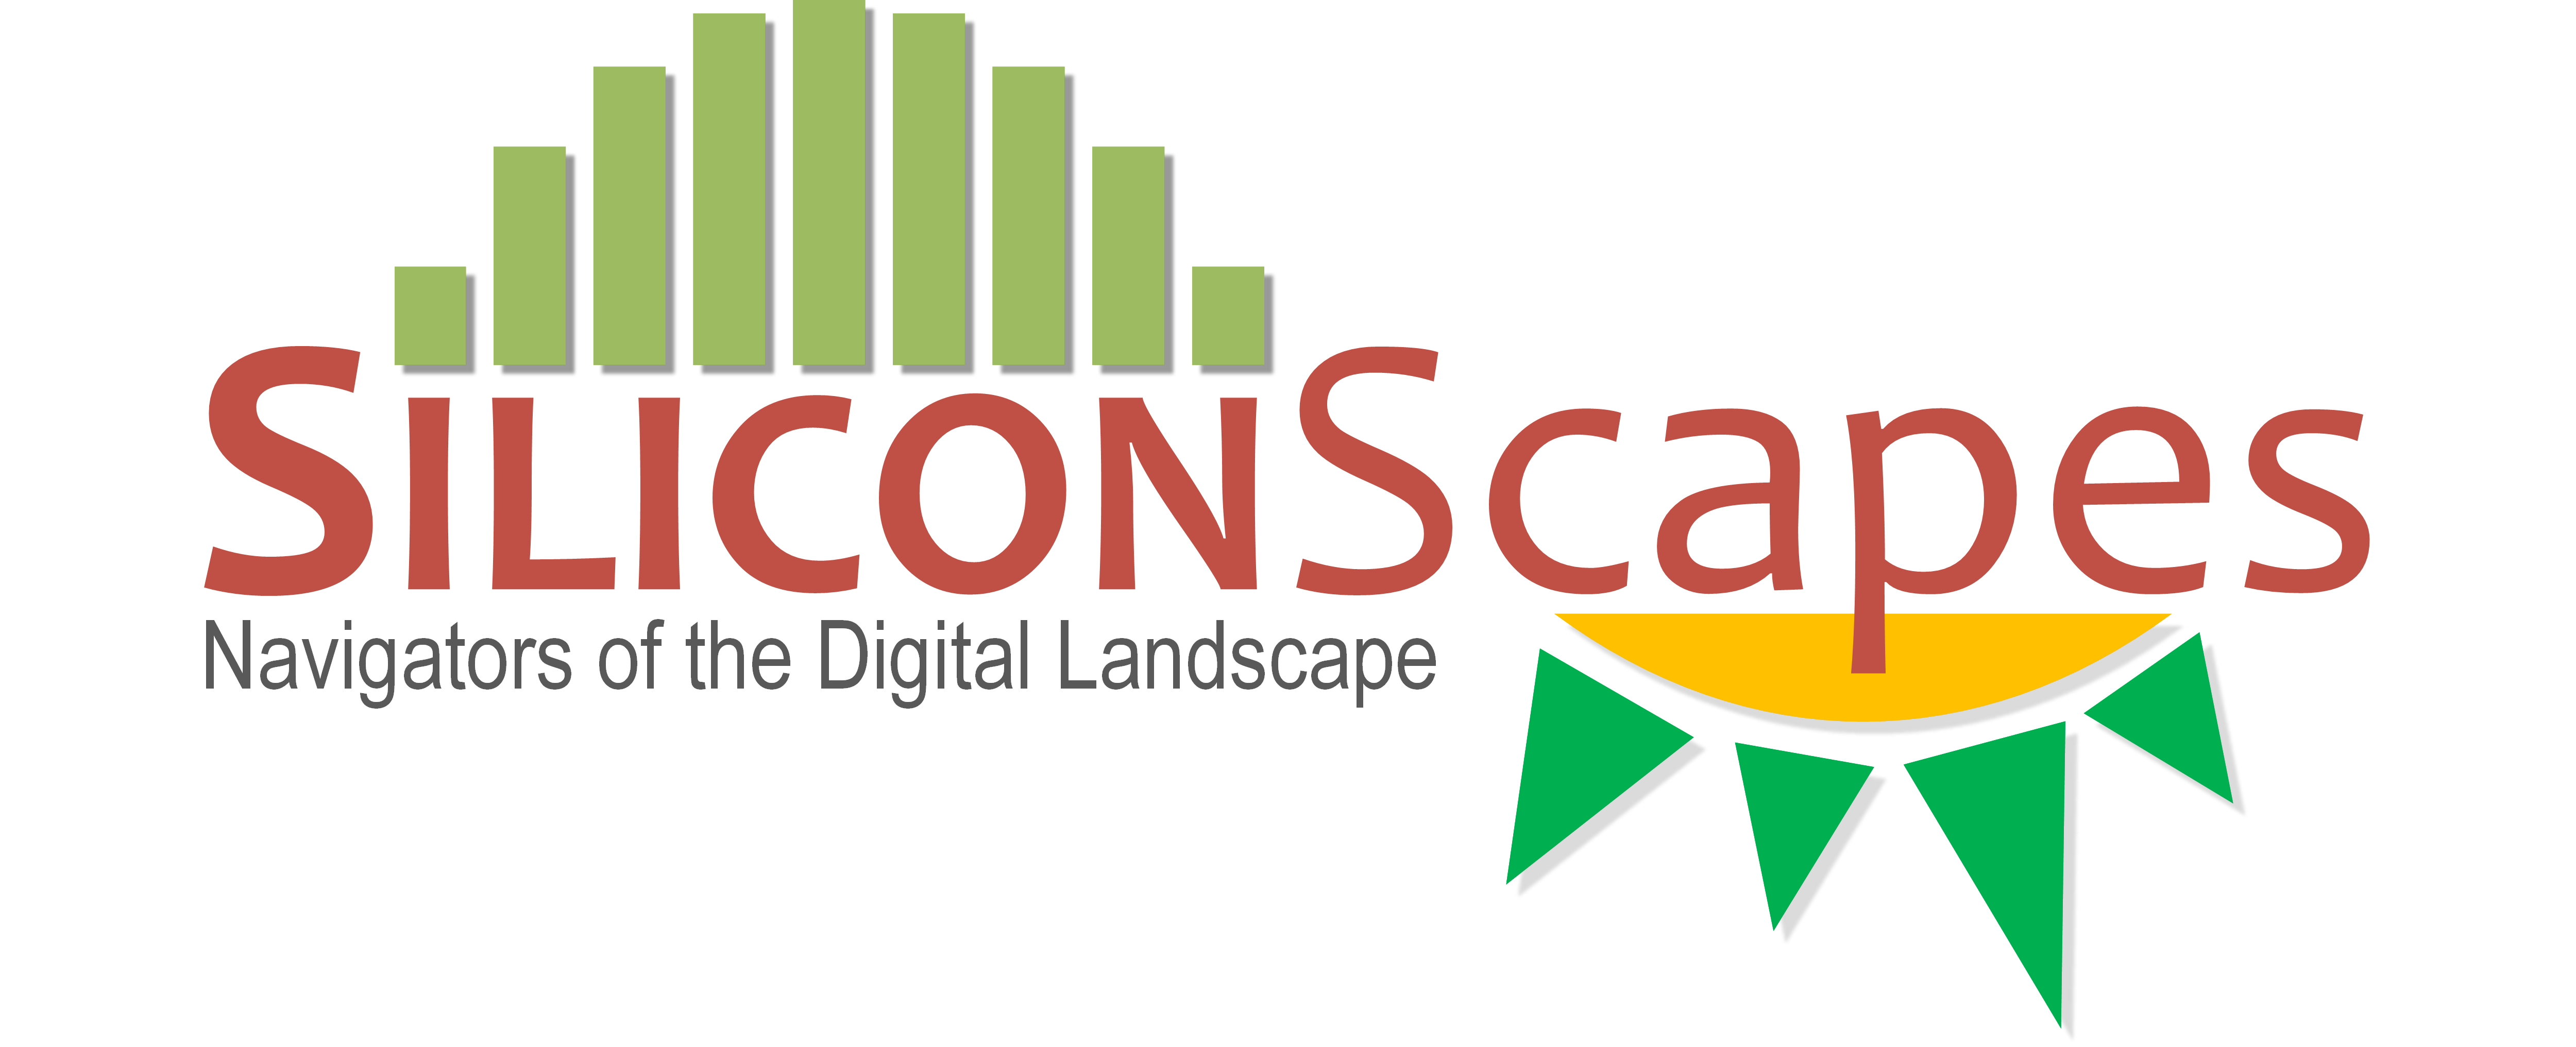 SiliconScapes